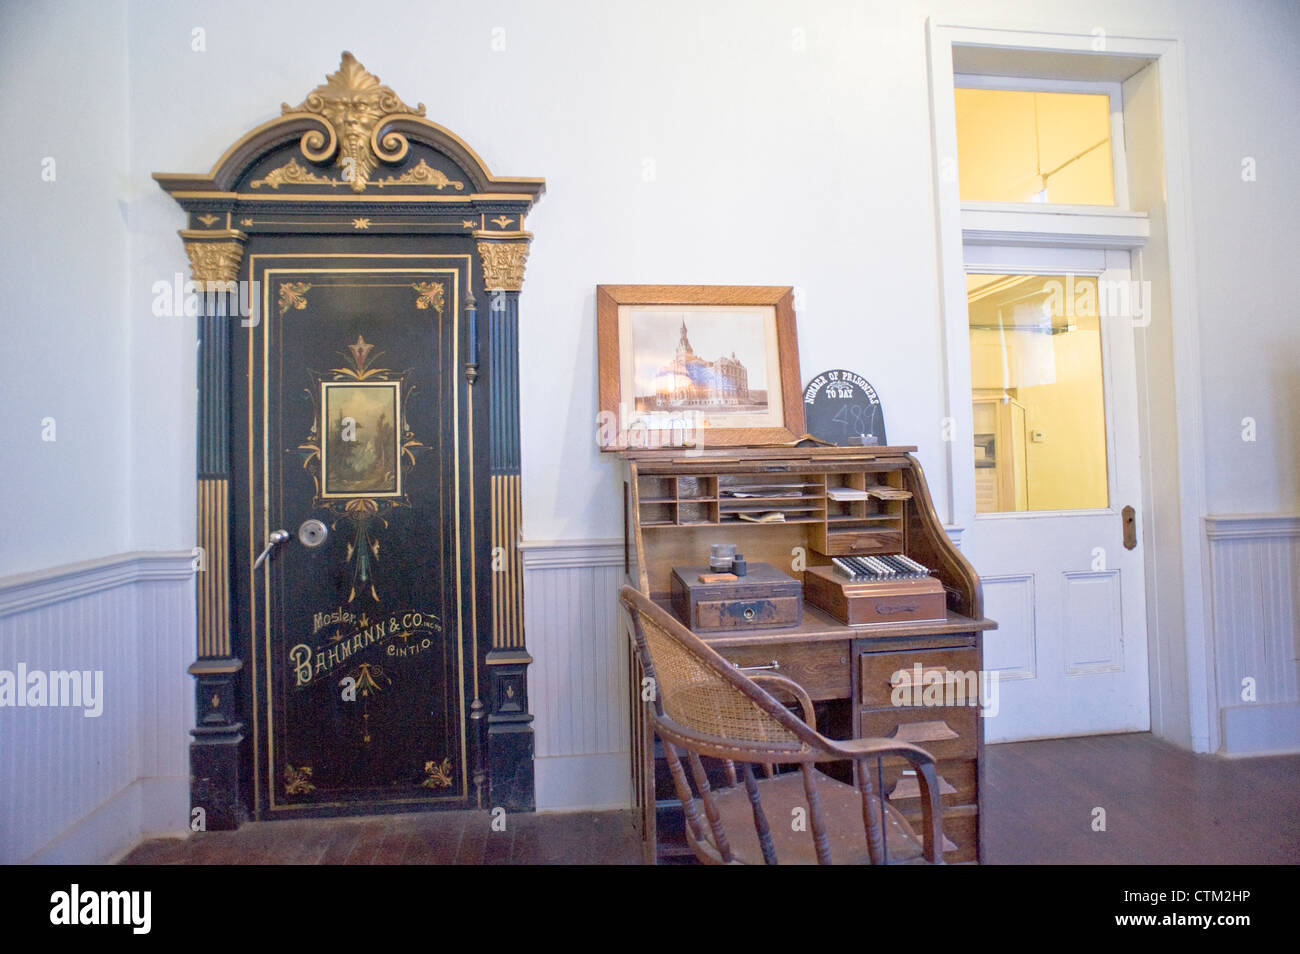 The warden's office at the Old Idaho State Penitentiary, Boise, Idaho, USA. - Stock Image